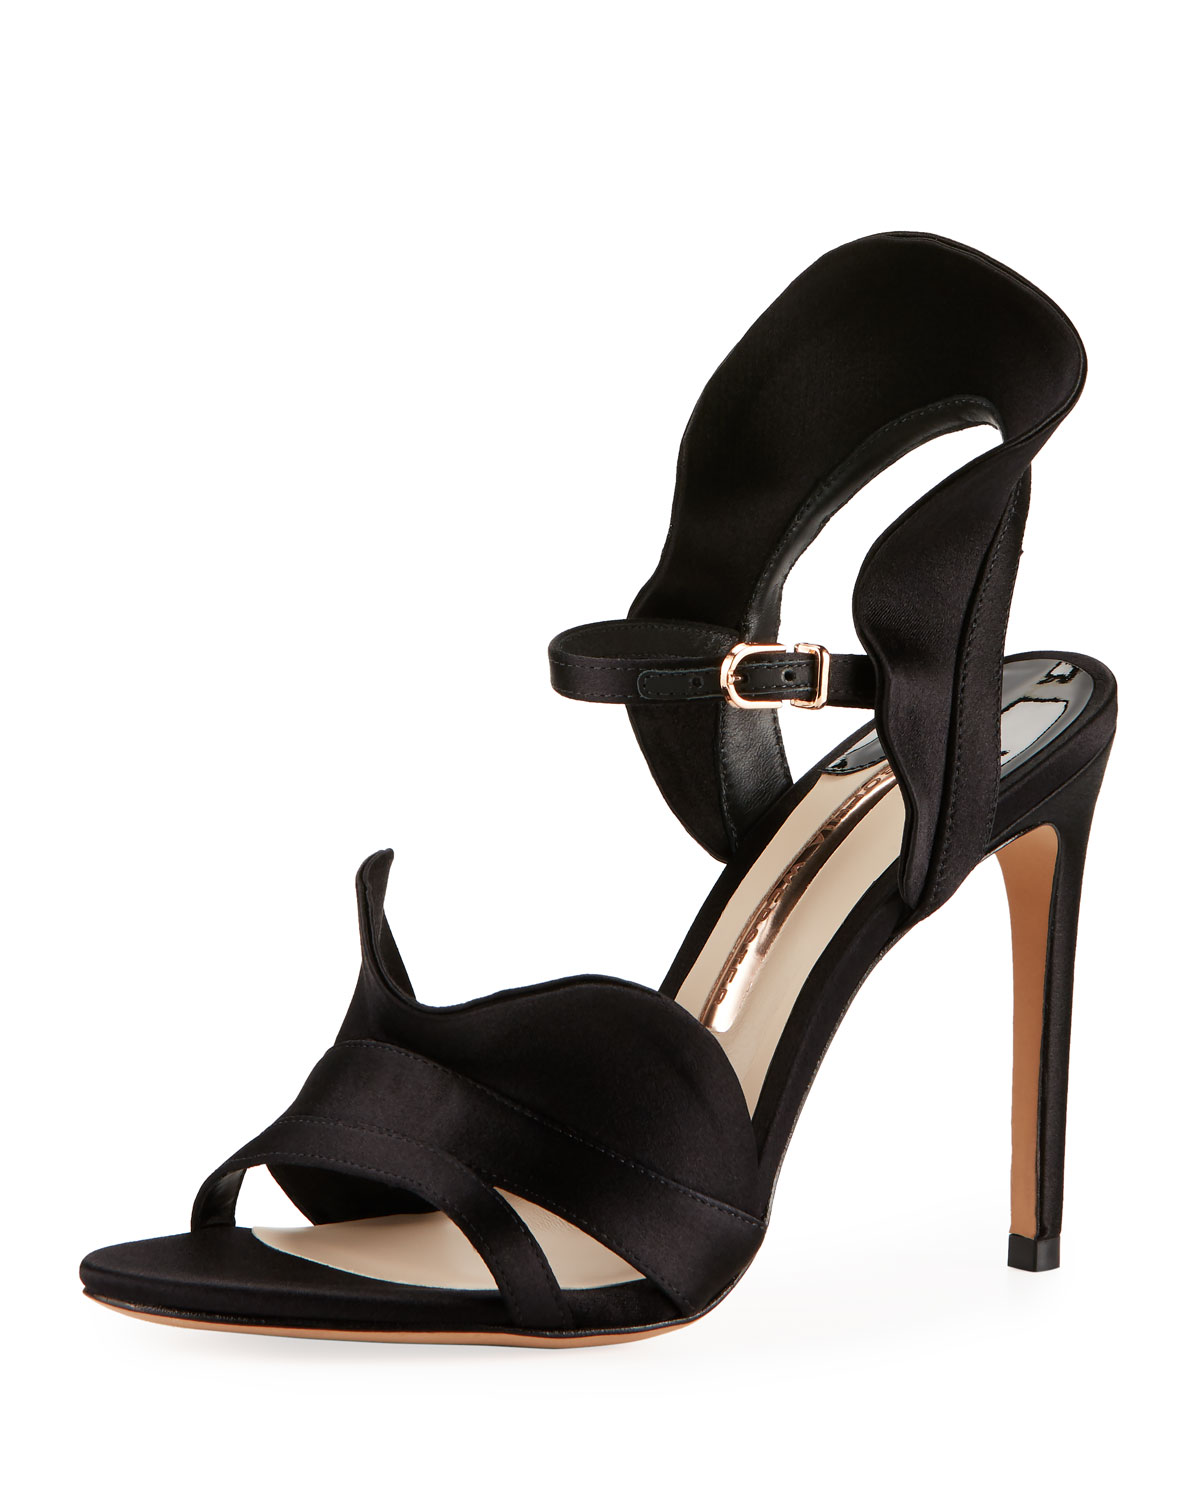 Sophia Webster Lucia Ruffle Satin Sandals Neiman Marcus